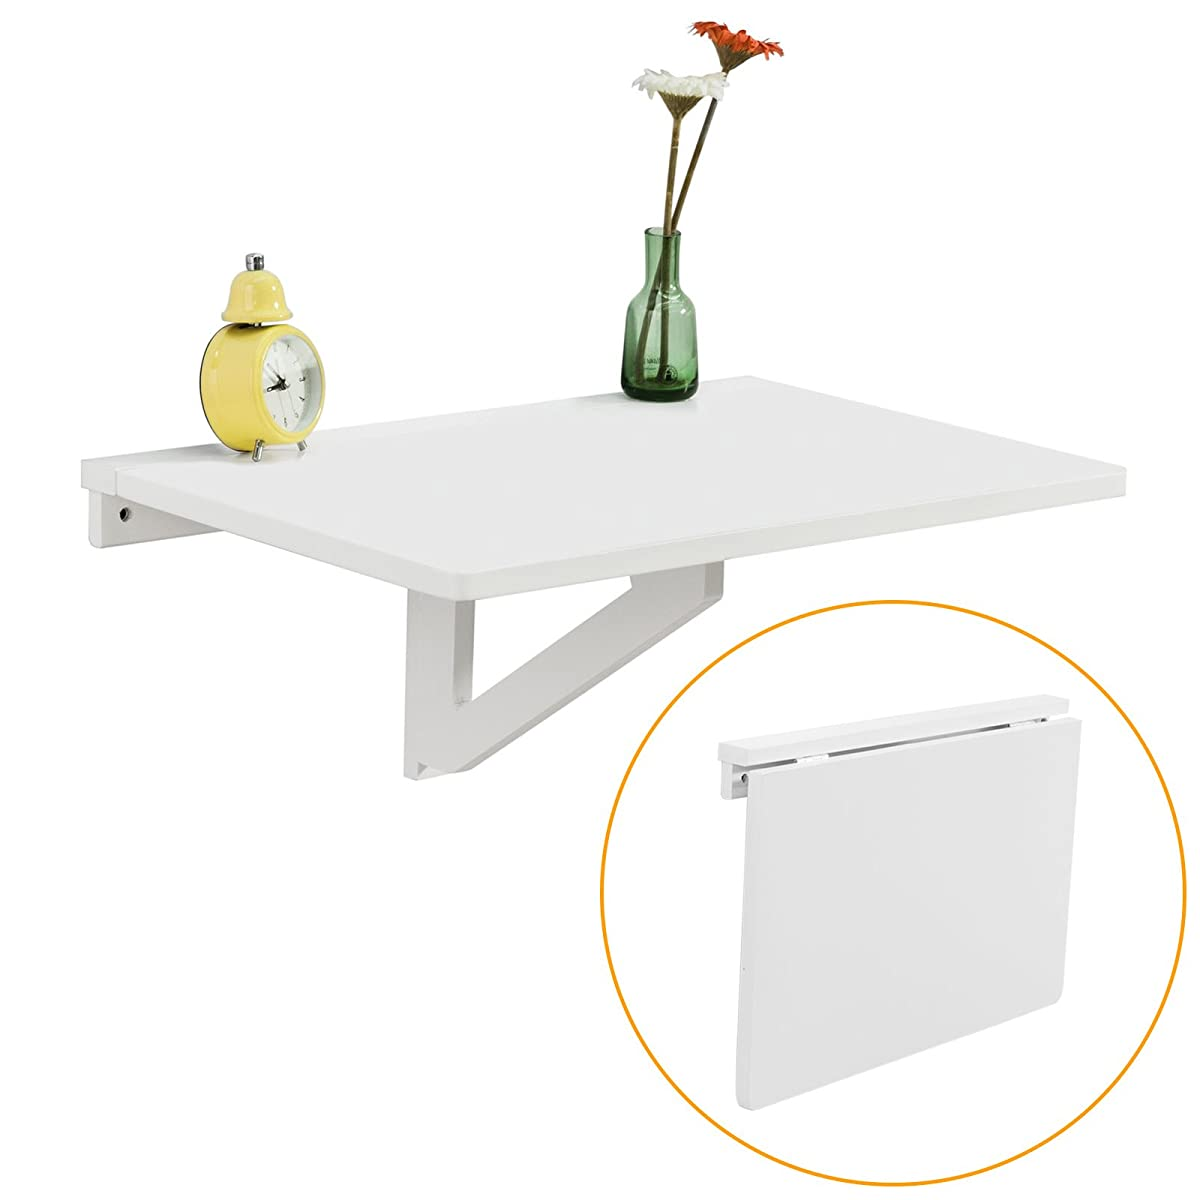 Haotian Wall-mounted Drop-leaf Table, Folding Kitchen & Dining Table Desk, Children Table,60cm(23.6in)X40cm(15.7in),White,FWT03-W,